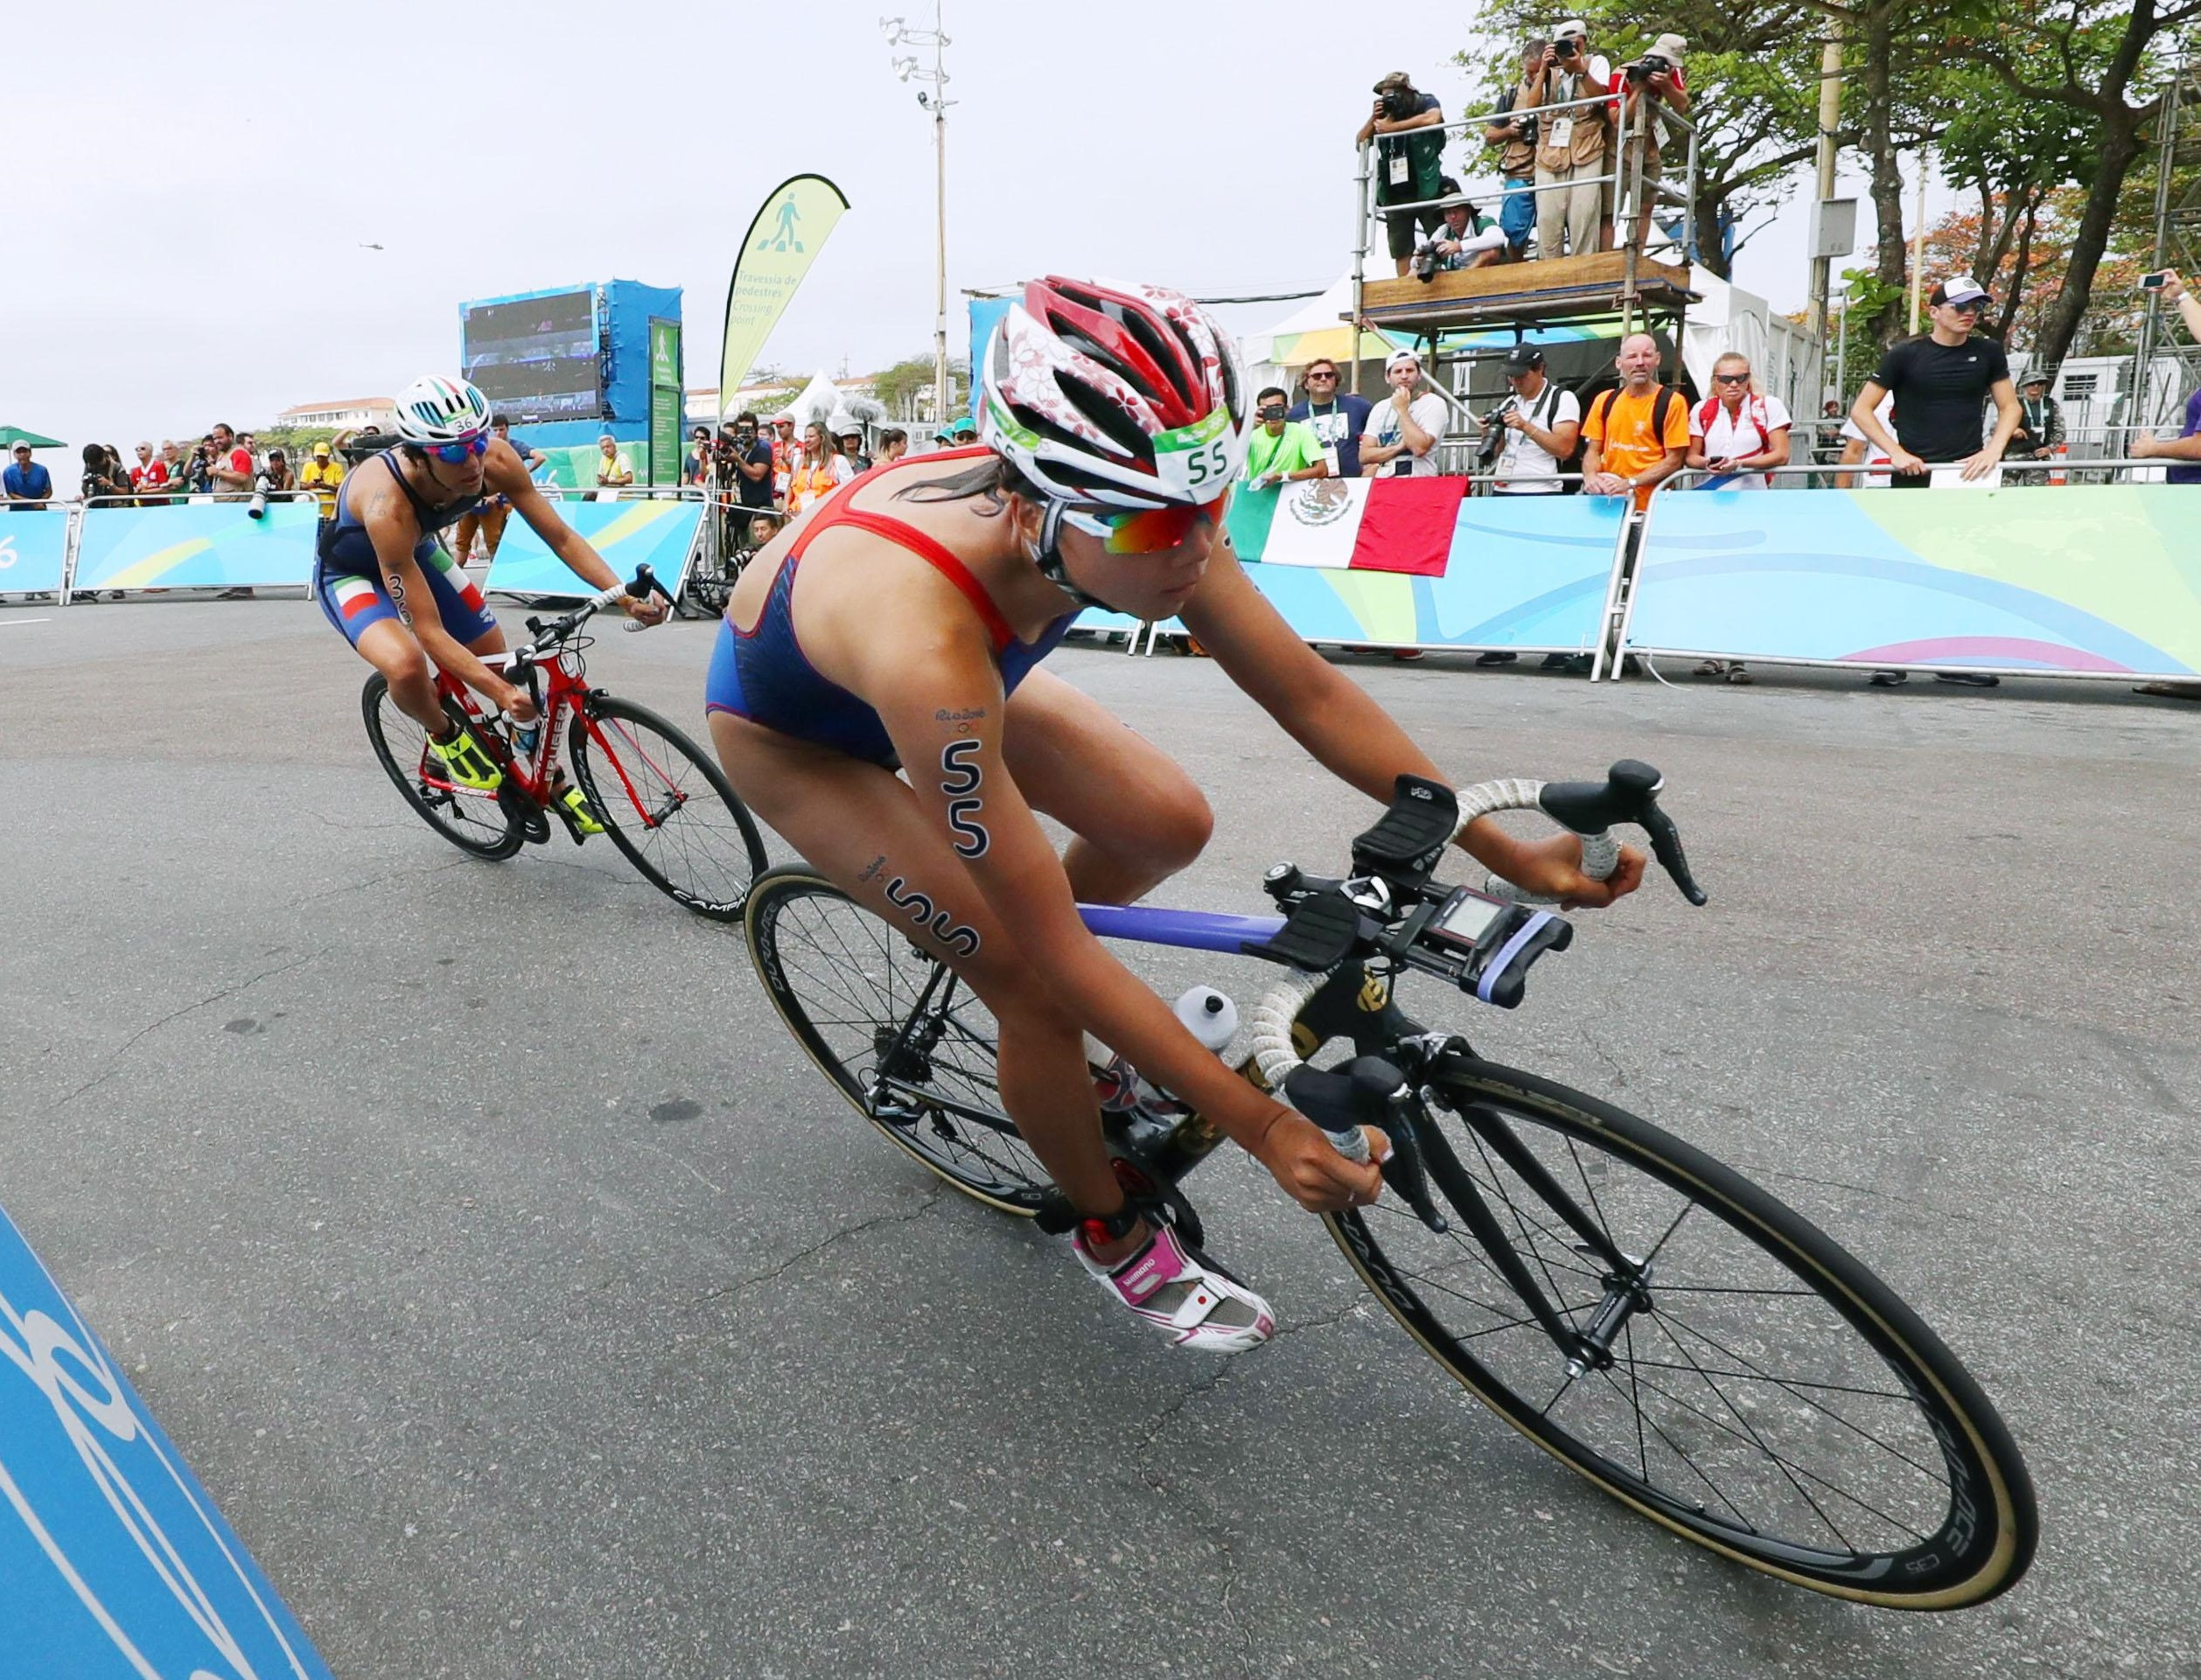 Yuka Sato competes in the women's triathlon on Saturday at the 2016 Rio Olympics. | KYODO